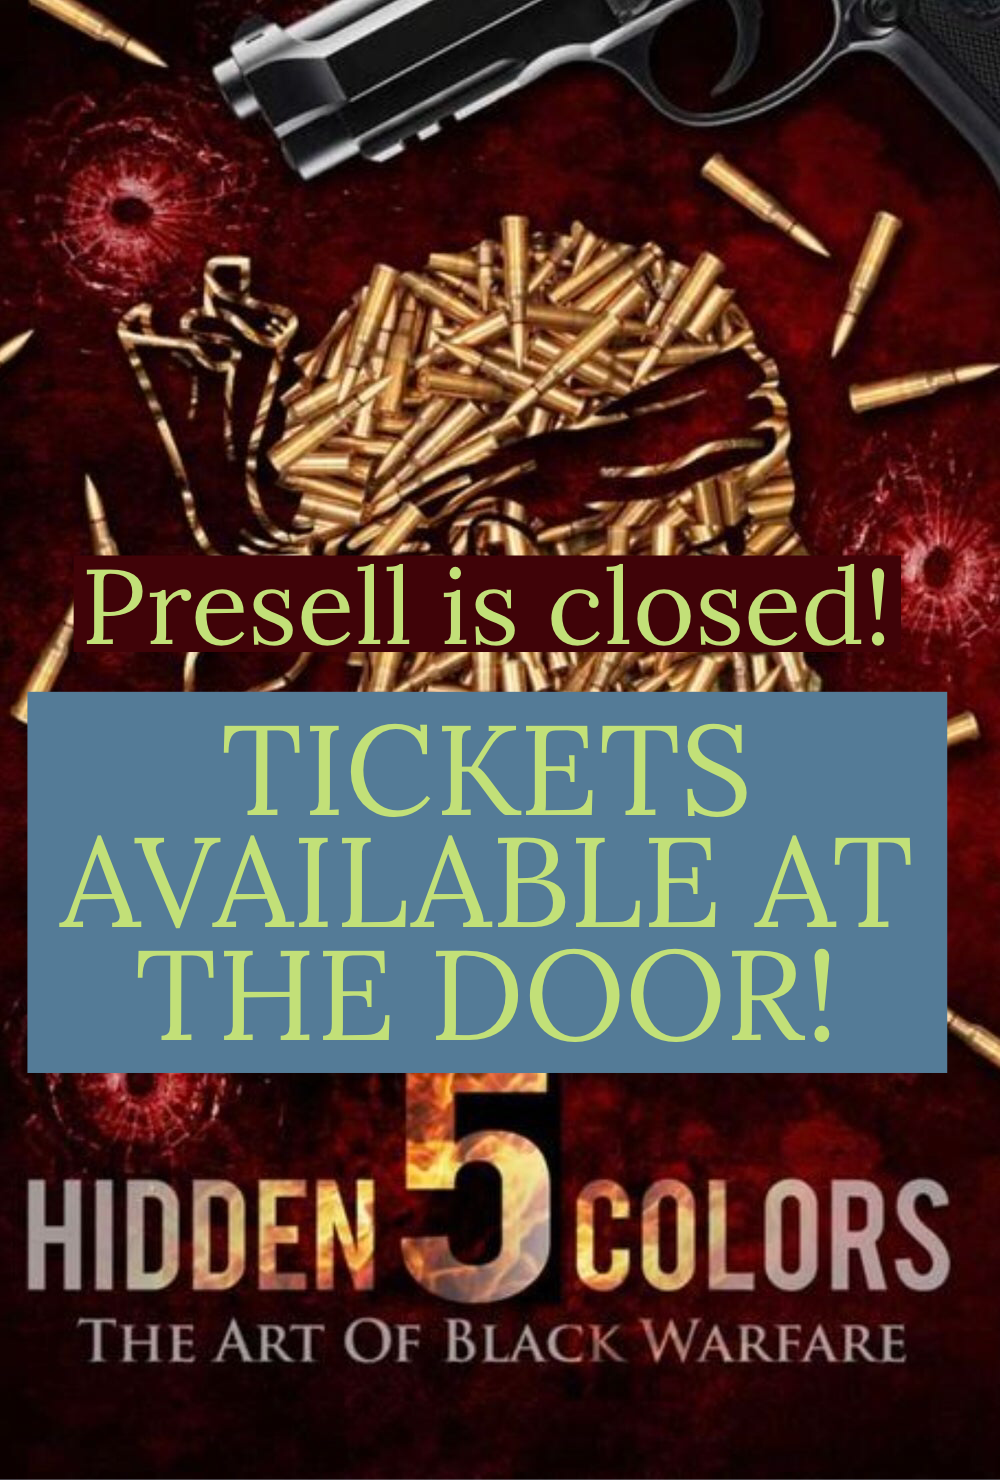 Image of  (TICKETS AVAILABLE AT THEATRE  )Hidden Colors 5  Movie Screening Phoenix